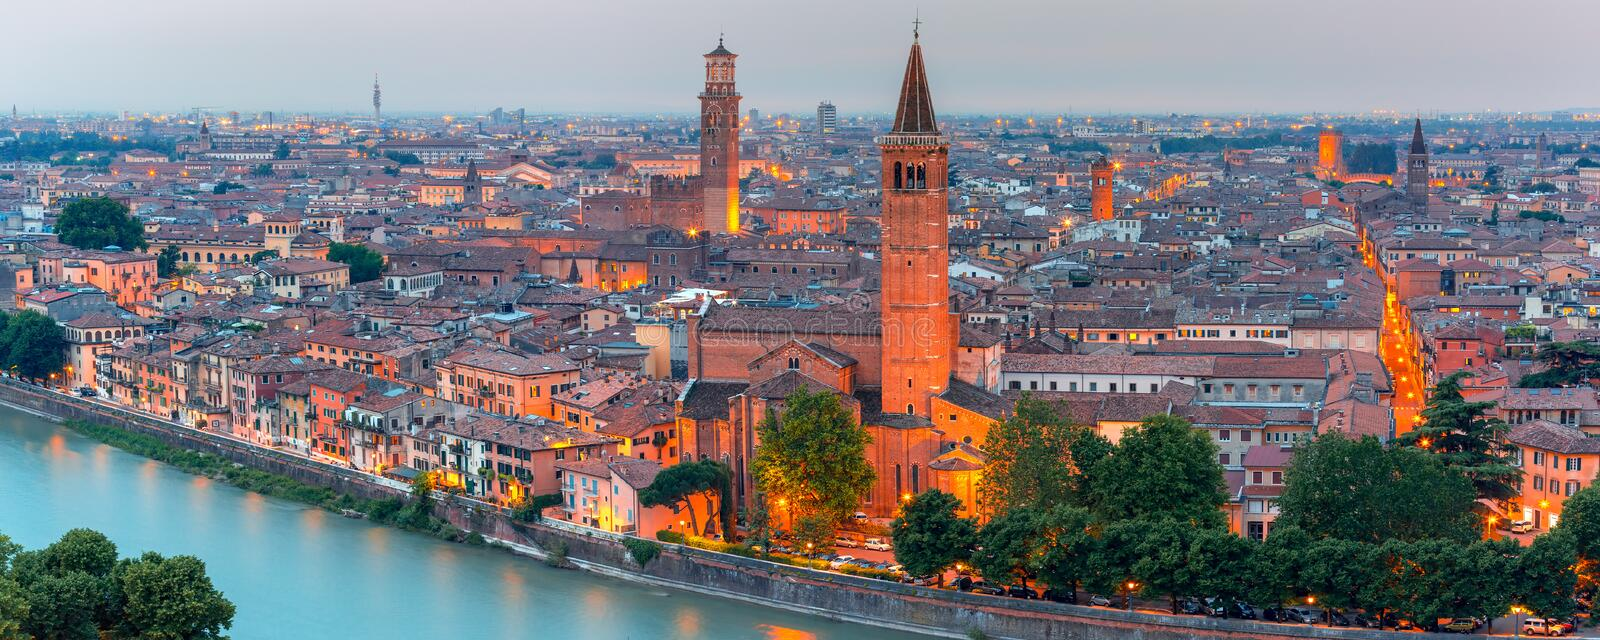 Panorama of Verona skyline at night, Italy royalty free stock photo